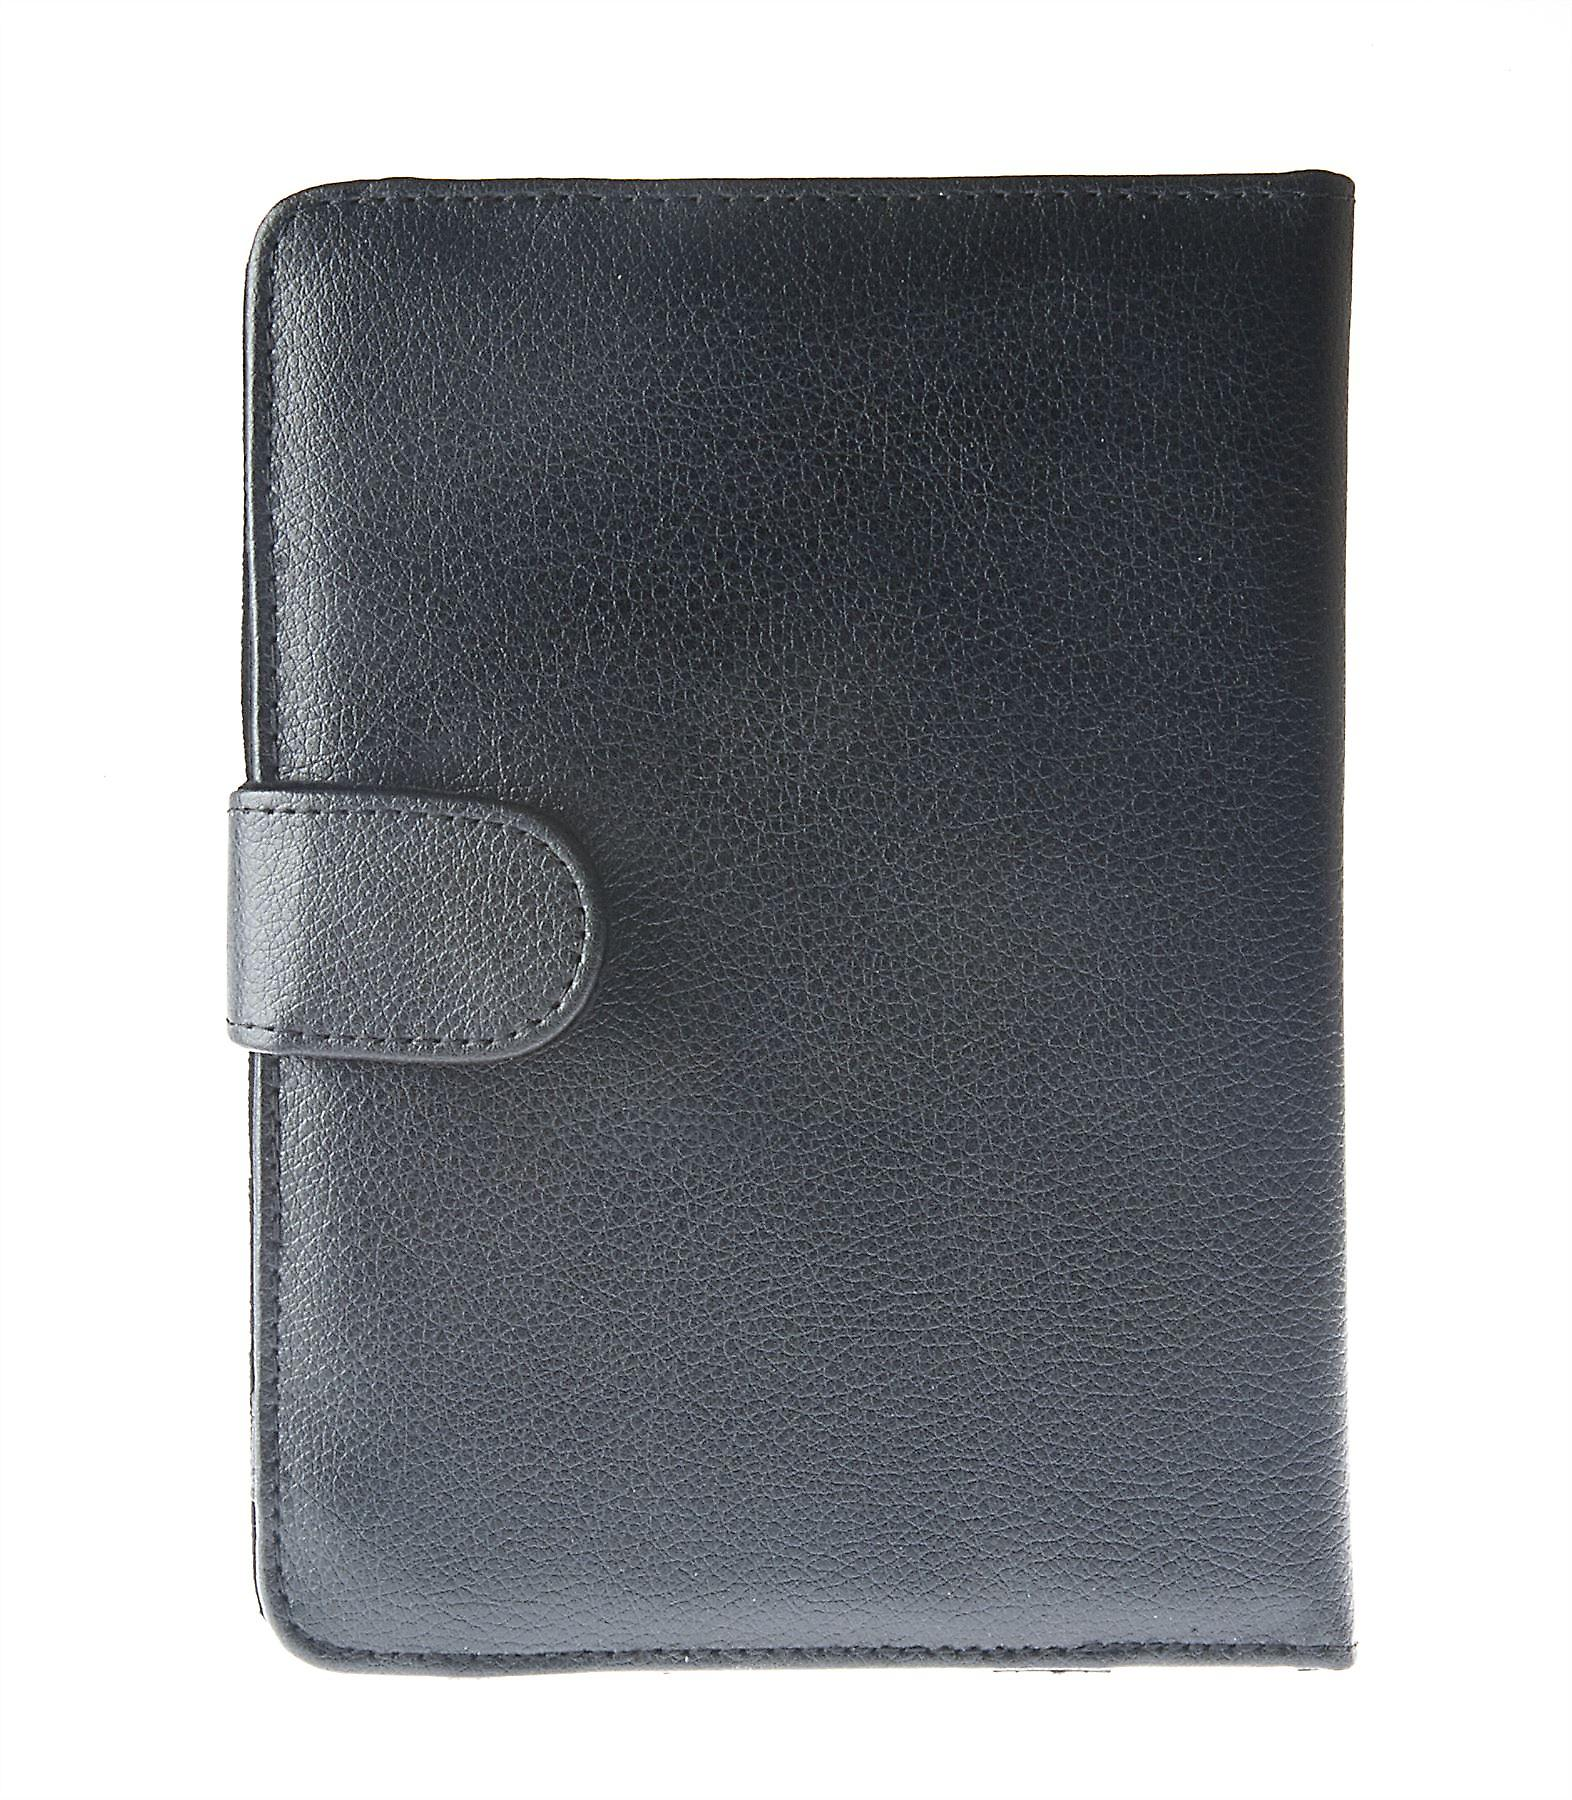 ICARUS cover black leather for Illumina HD/Pocket/Sense G2